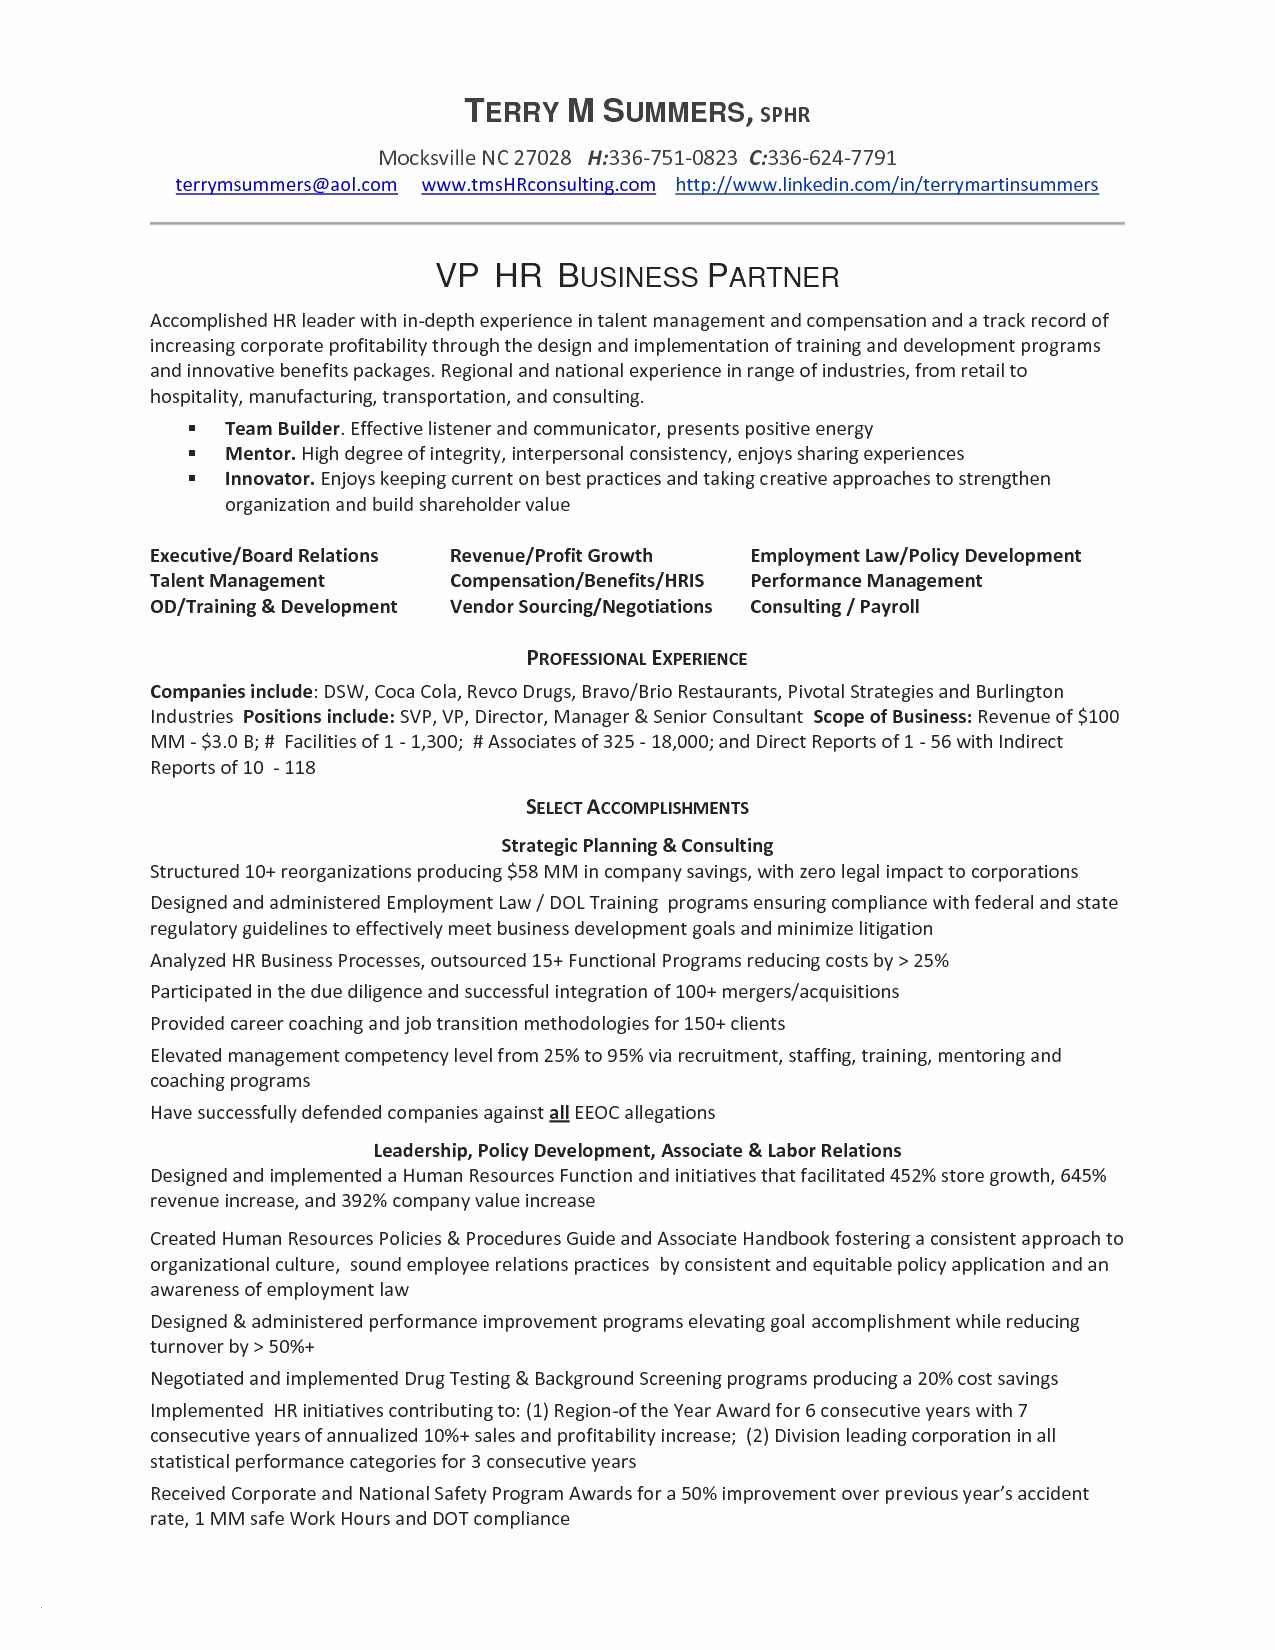 Ross School Of Business Resume Template - Data Analyst Resume Template Best Senior Data Analyst Resume